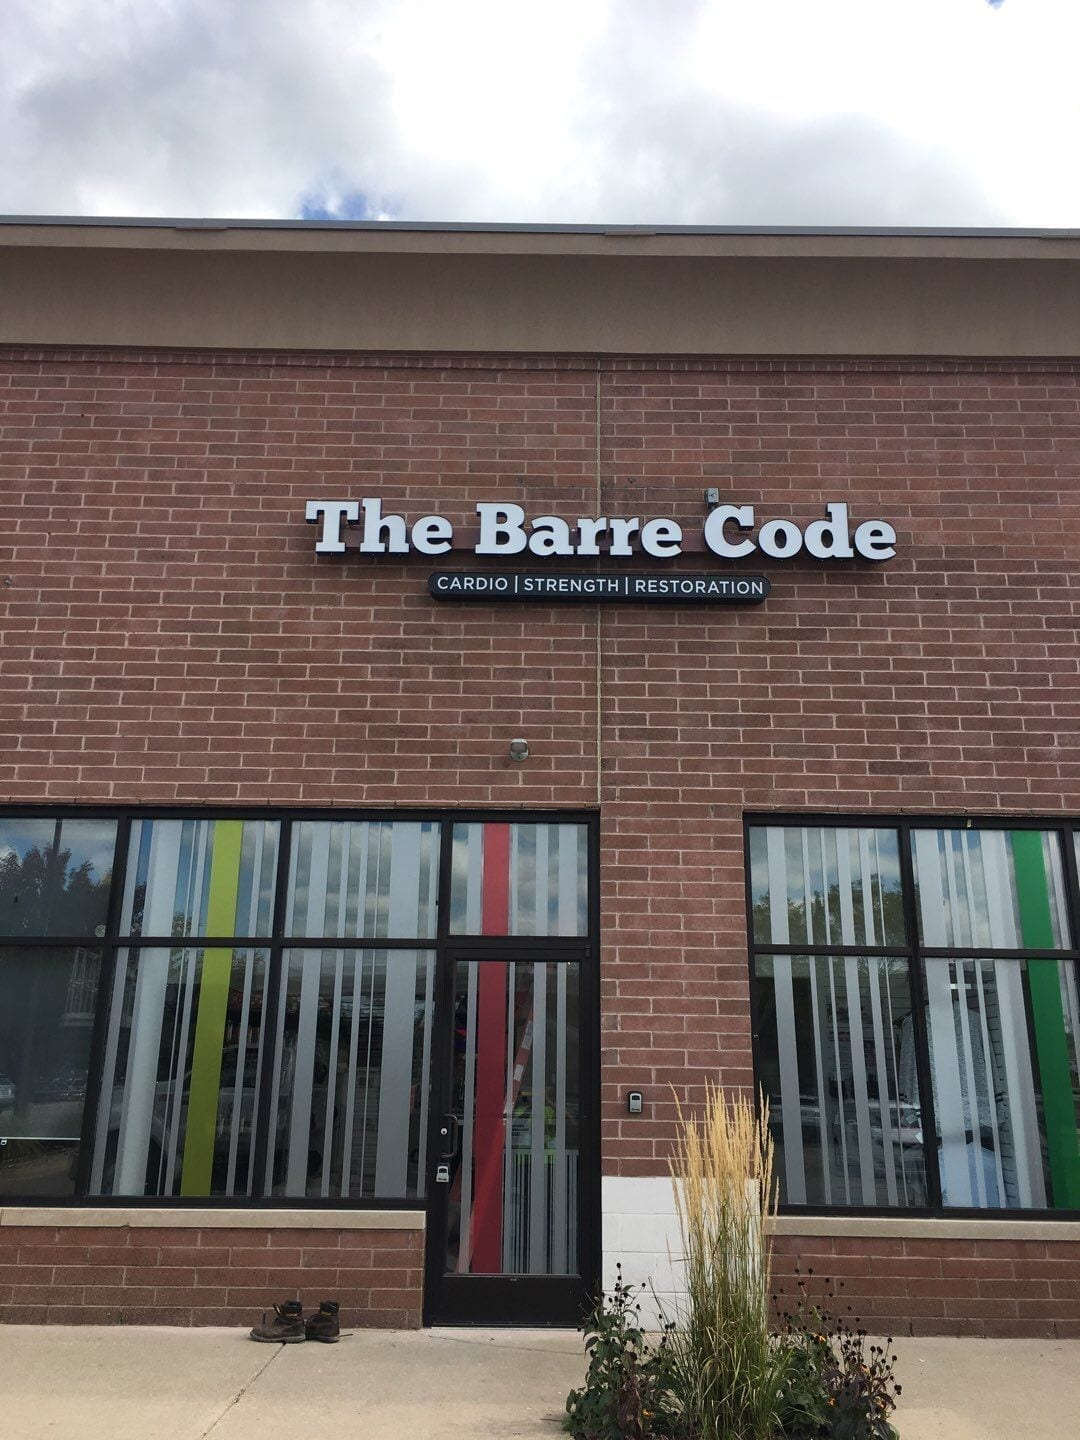 The Barre Code building mounted on bricks channel letter sign